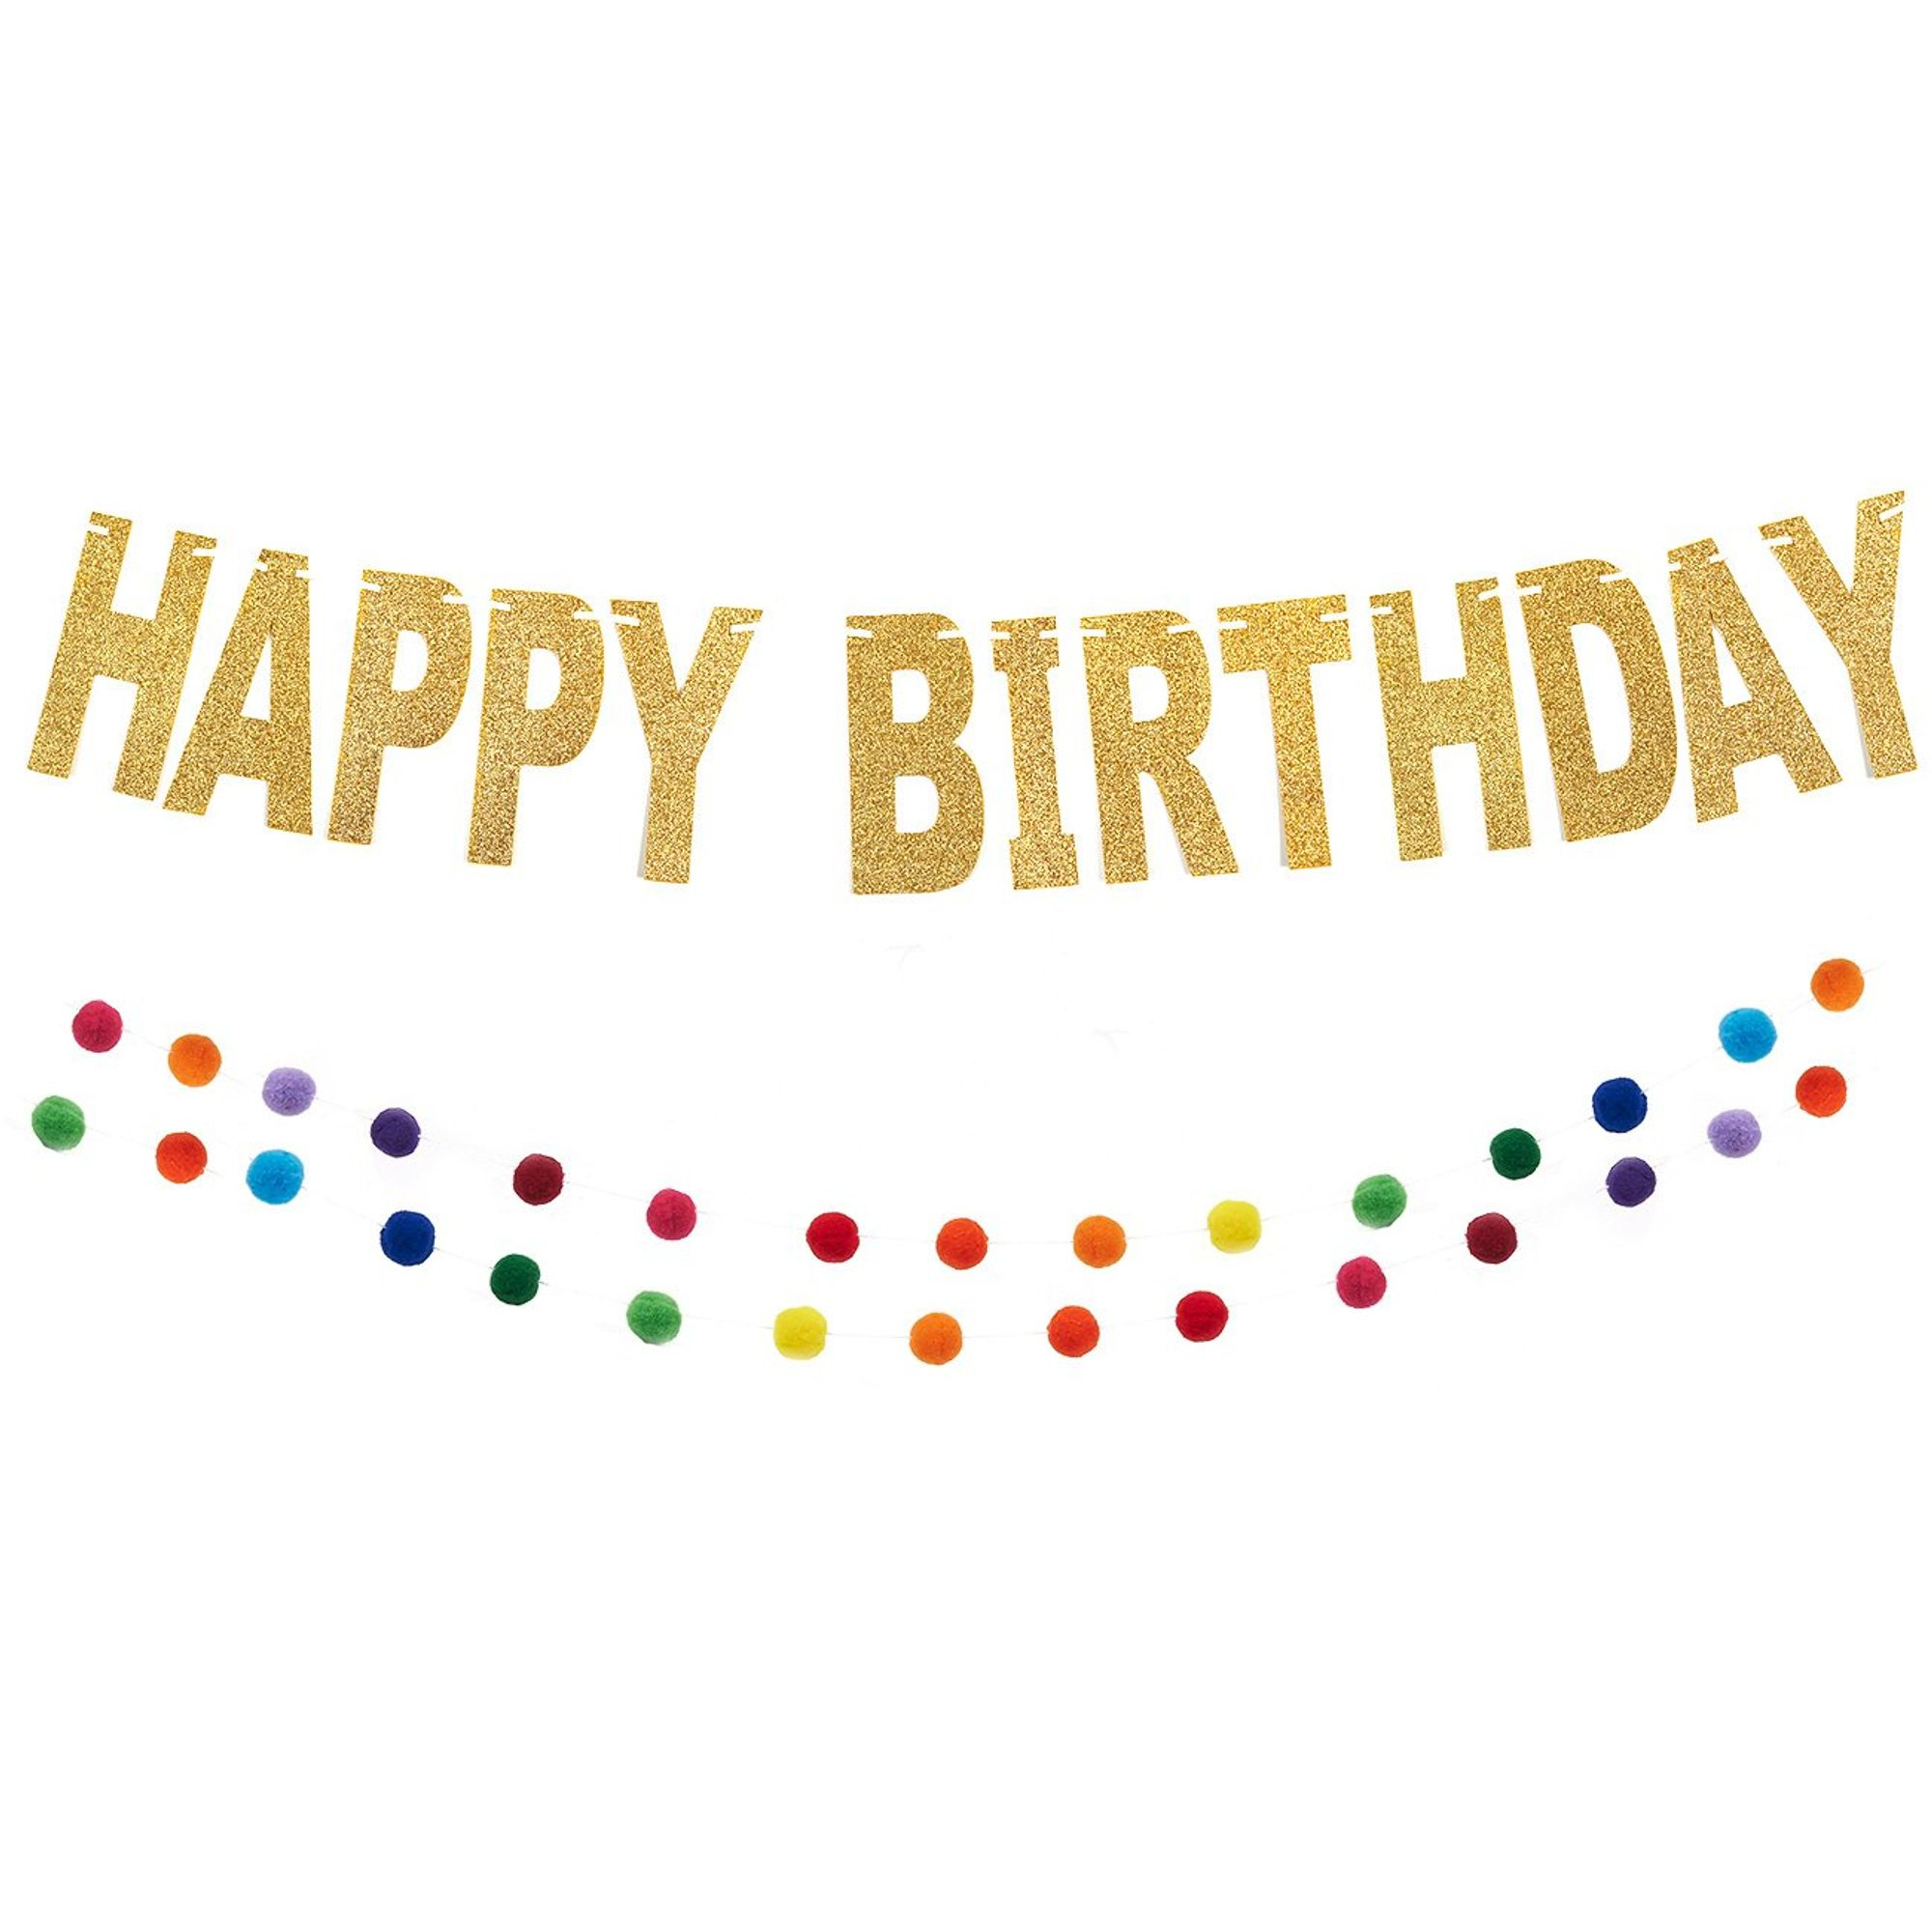 Happy Birthday Banner Set Includes 1x Gold Glittery Banner And 1x Rainbow Pom Pom Garland Wall Backdrop For Kids Party Supplies And Decoration Walmart Com Walmart Com